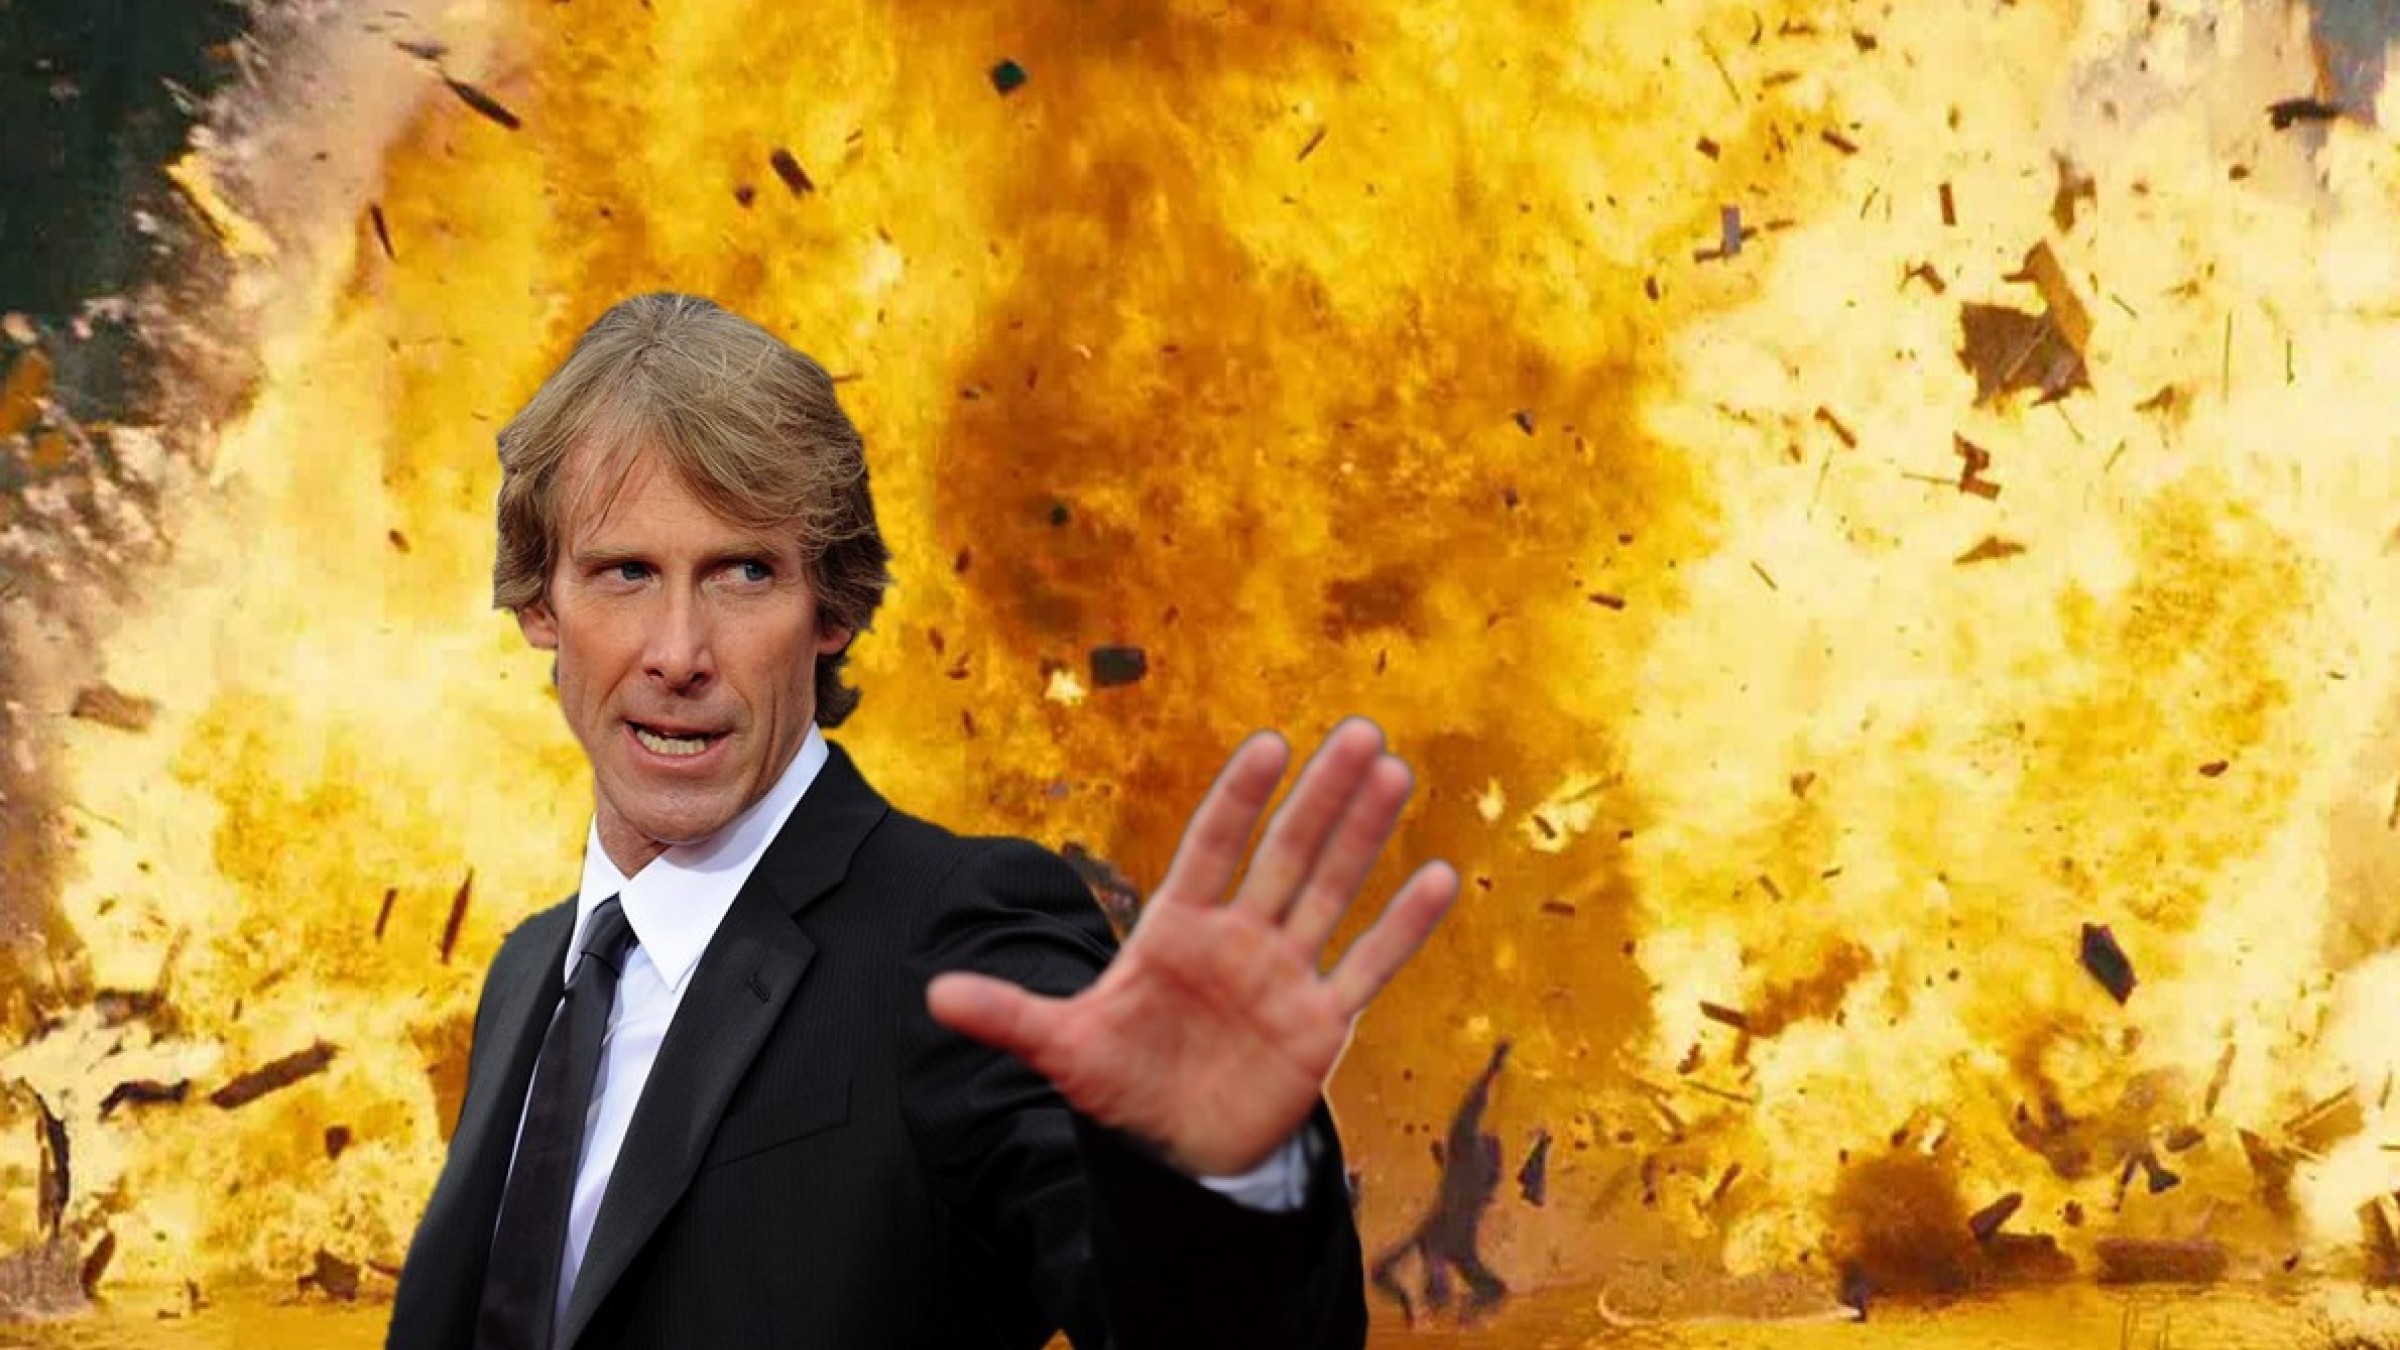 Watch: The 6 Ingredients Needed to Make a Film like Michael Bay